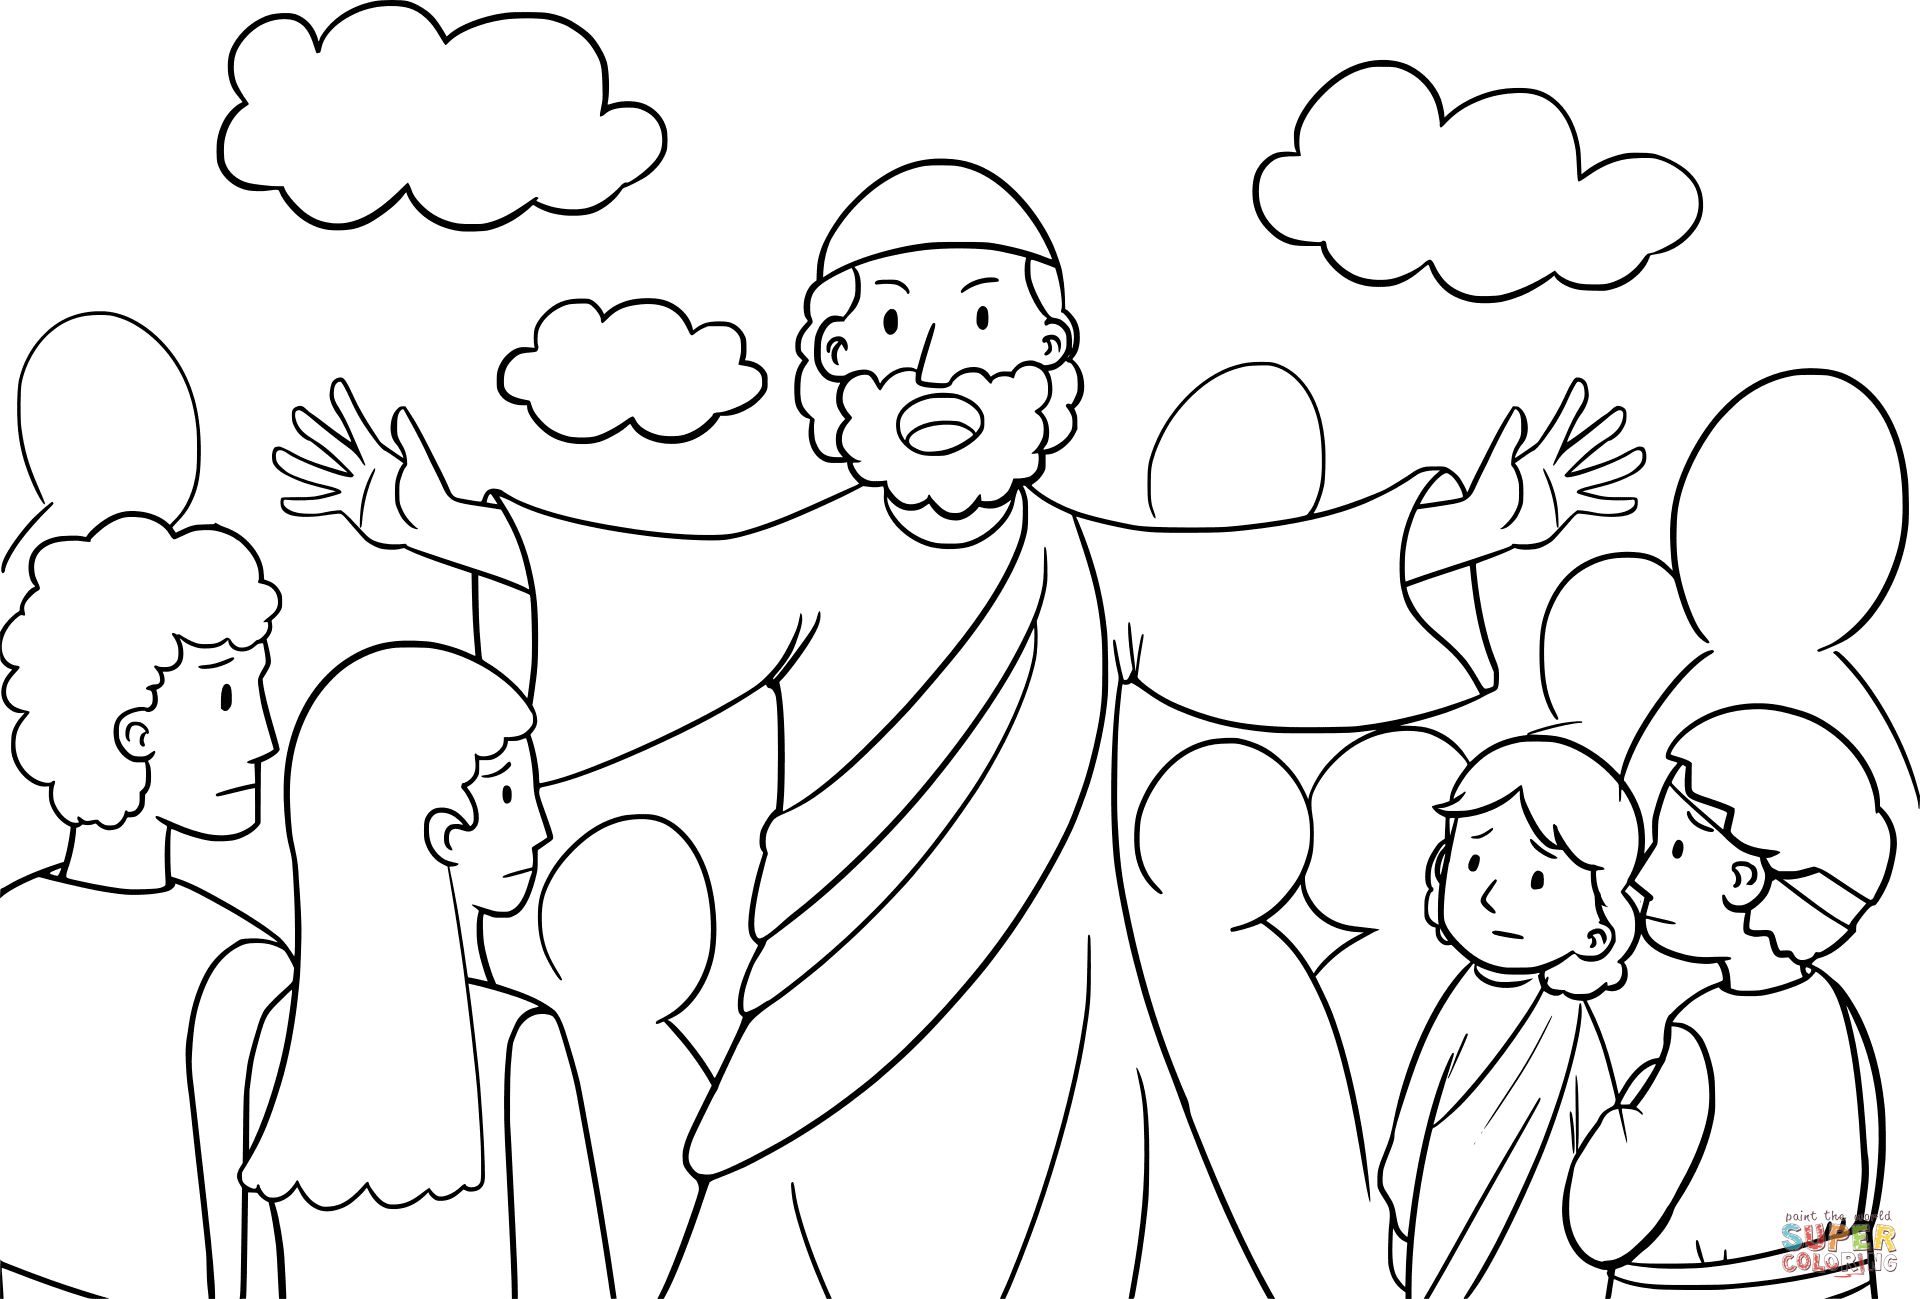 Moses Speaking To The Israelites Coloring Page